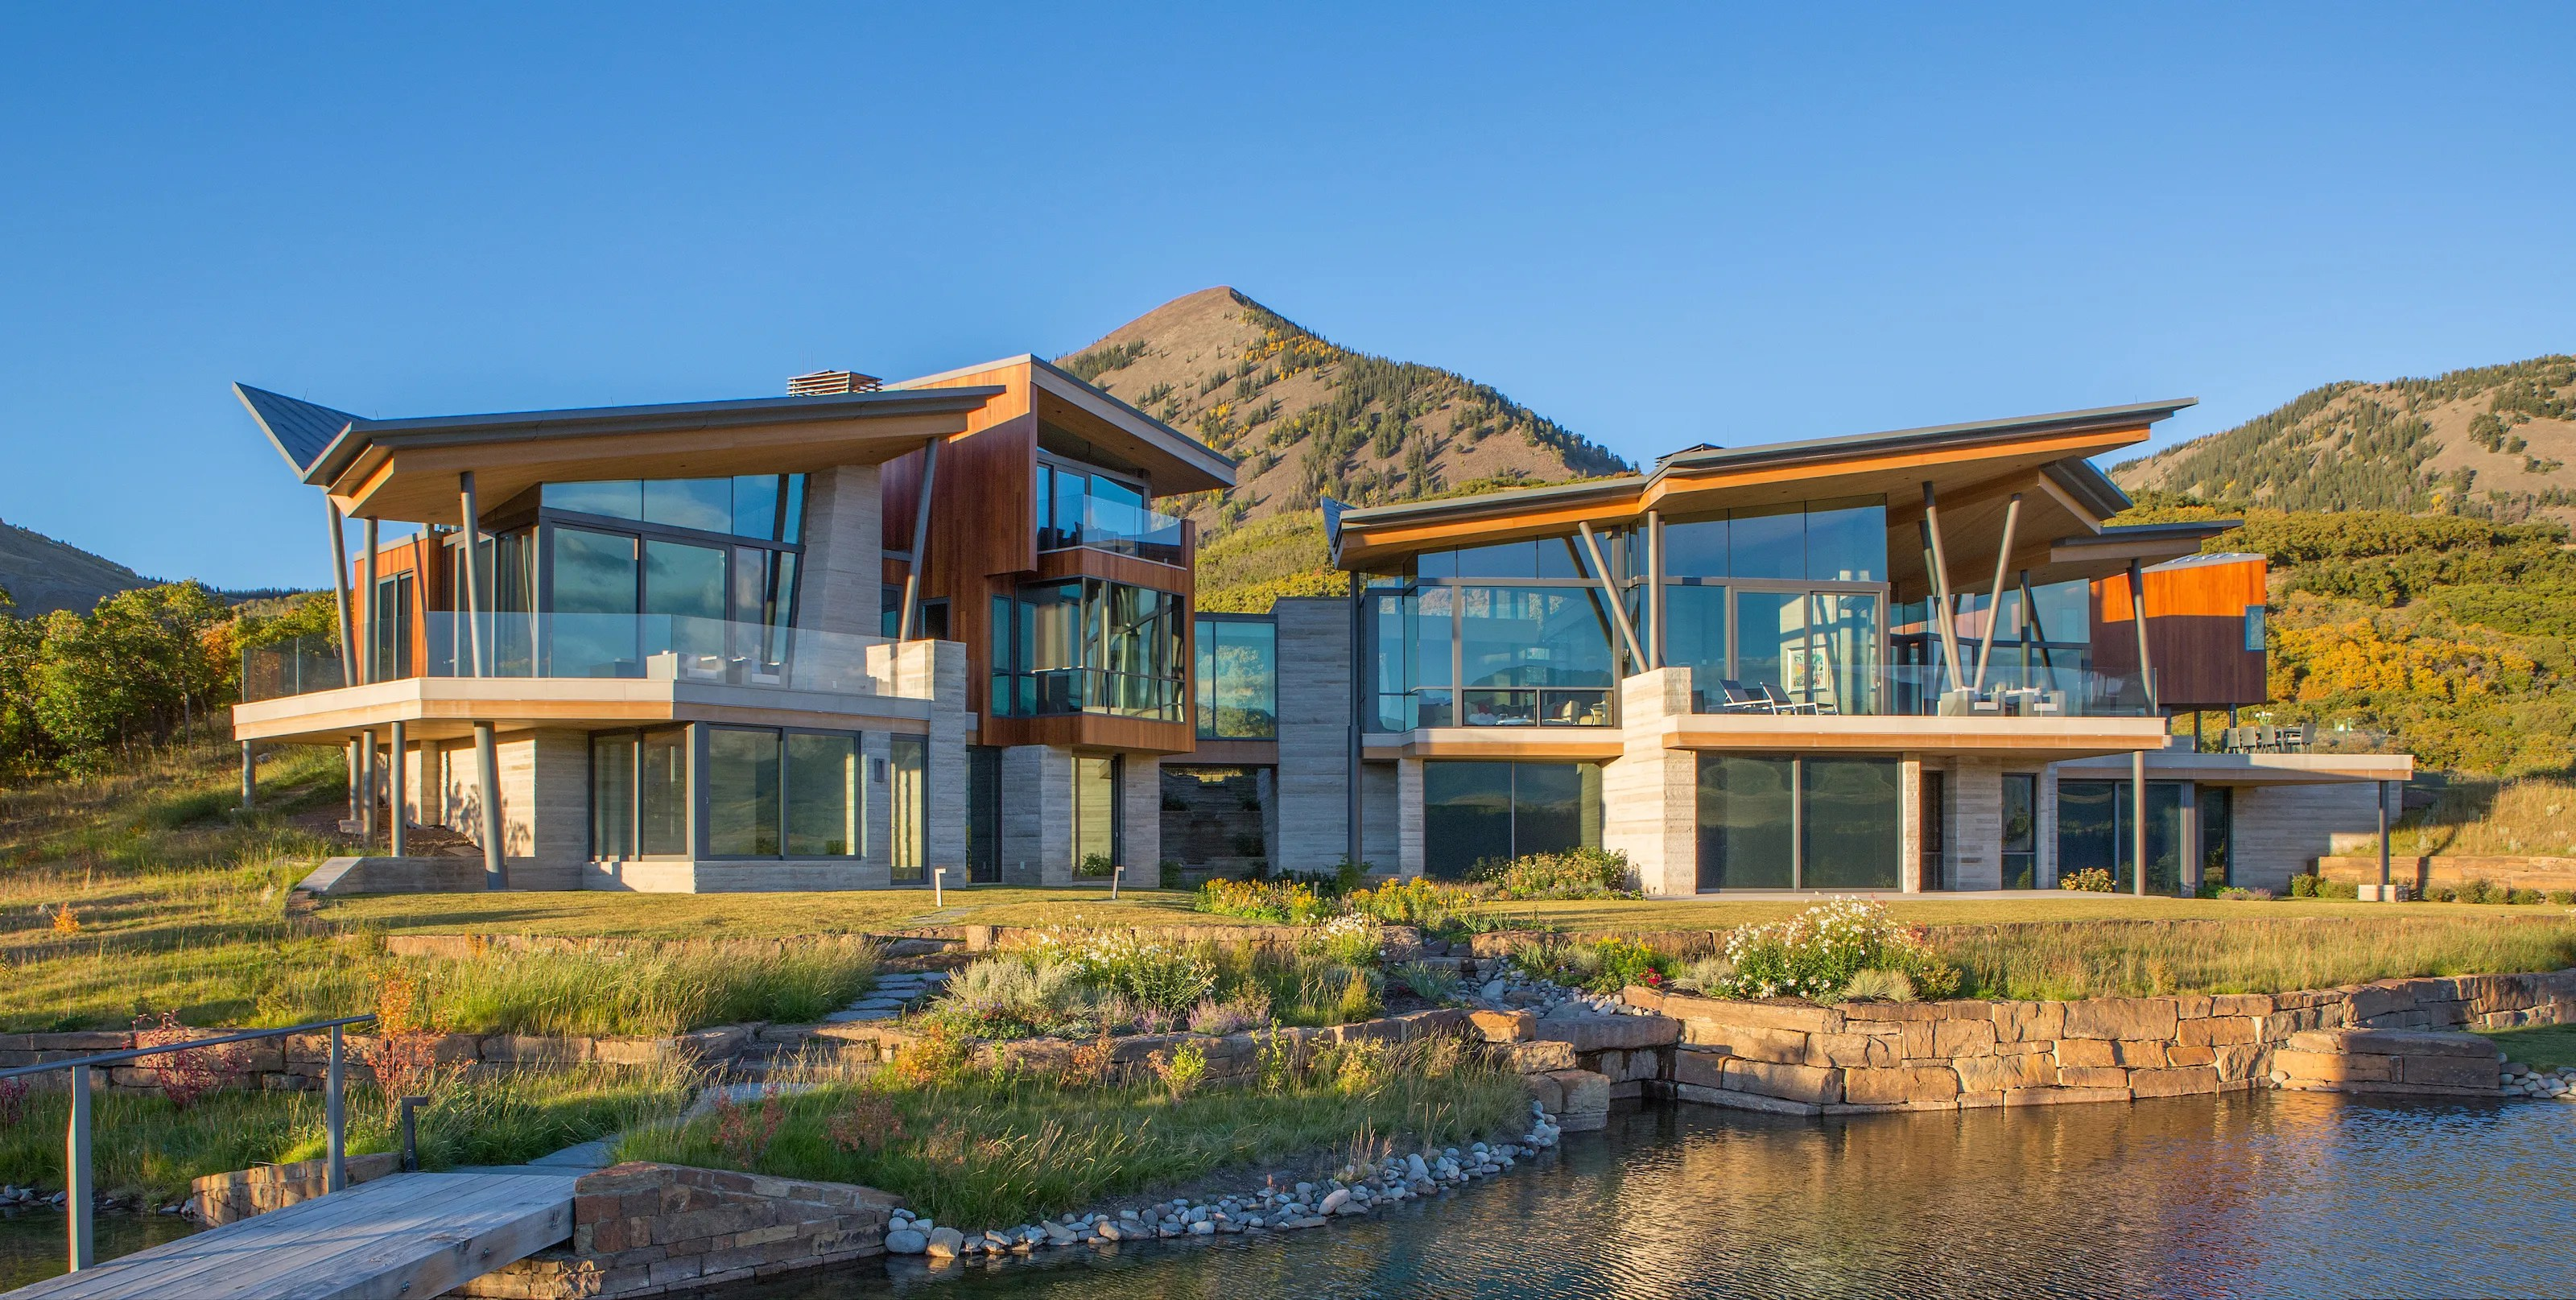 A $32.5 Million Glass House on the Edge of a Cliff in the